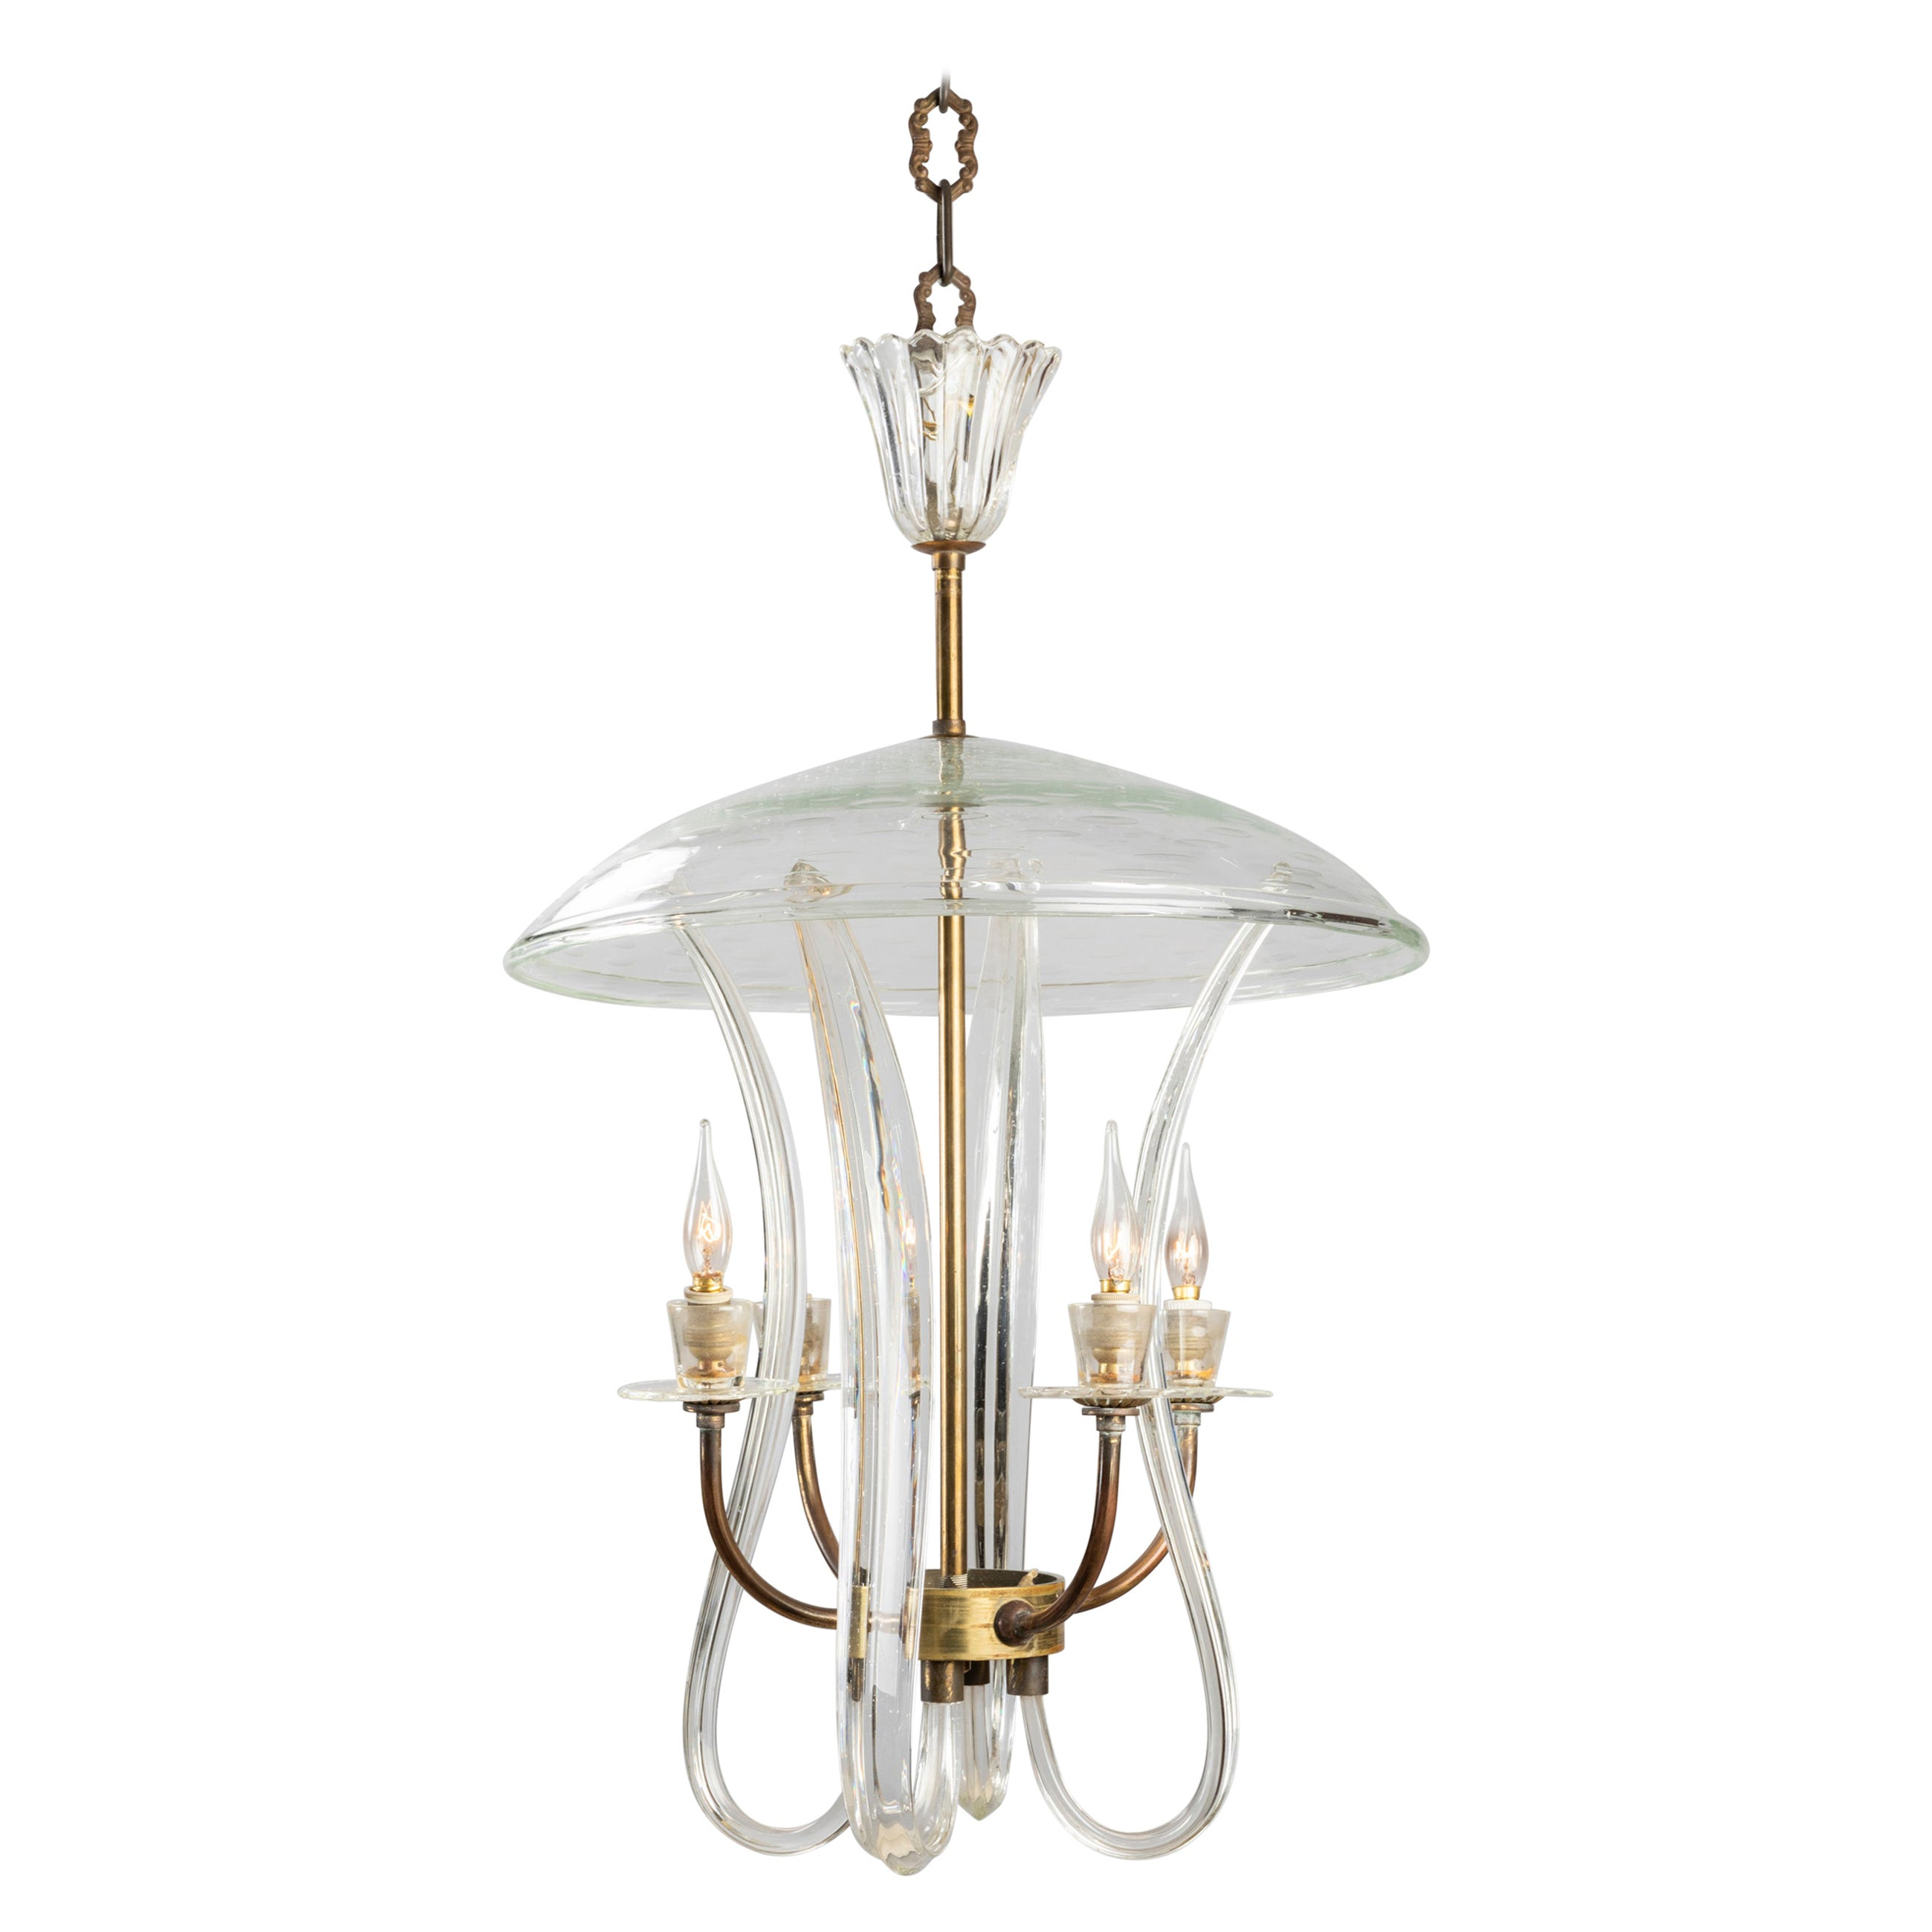 Barovier and Toso Ceiling Lamp in Murano Blown Glass, 1940s